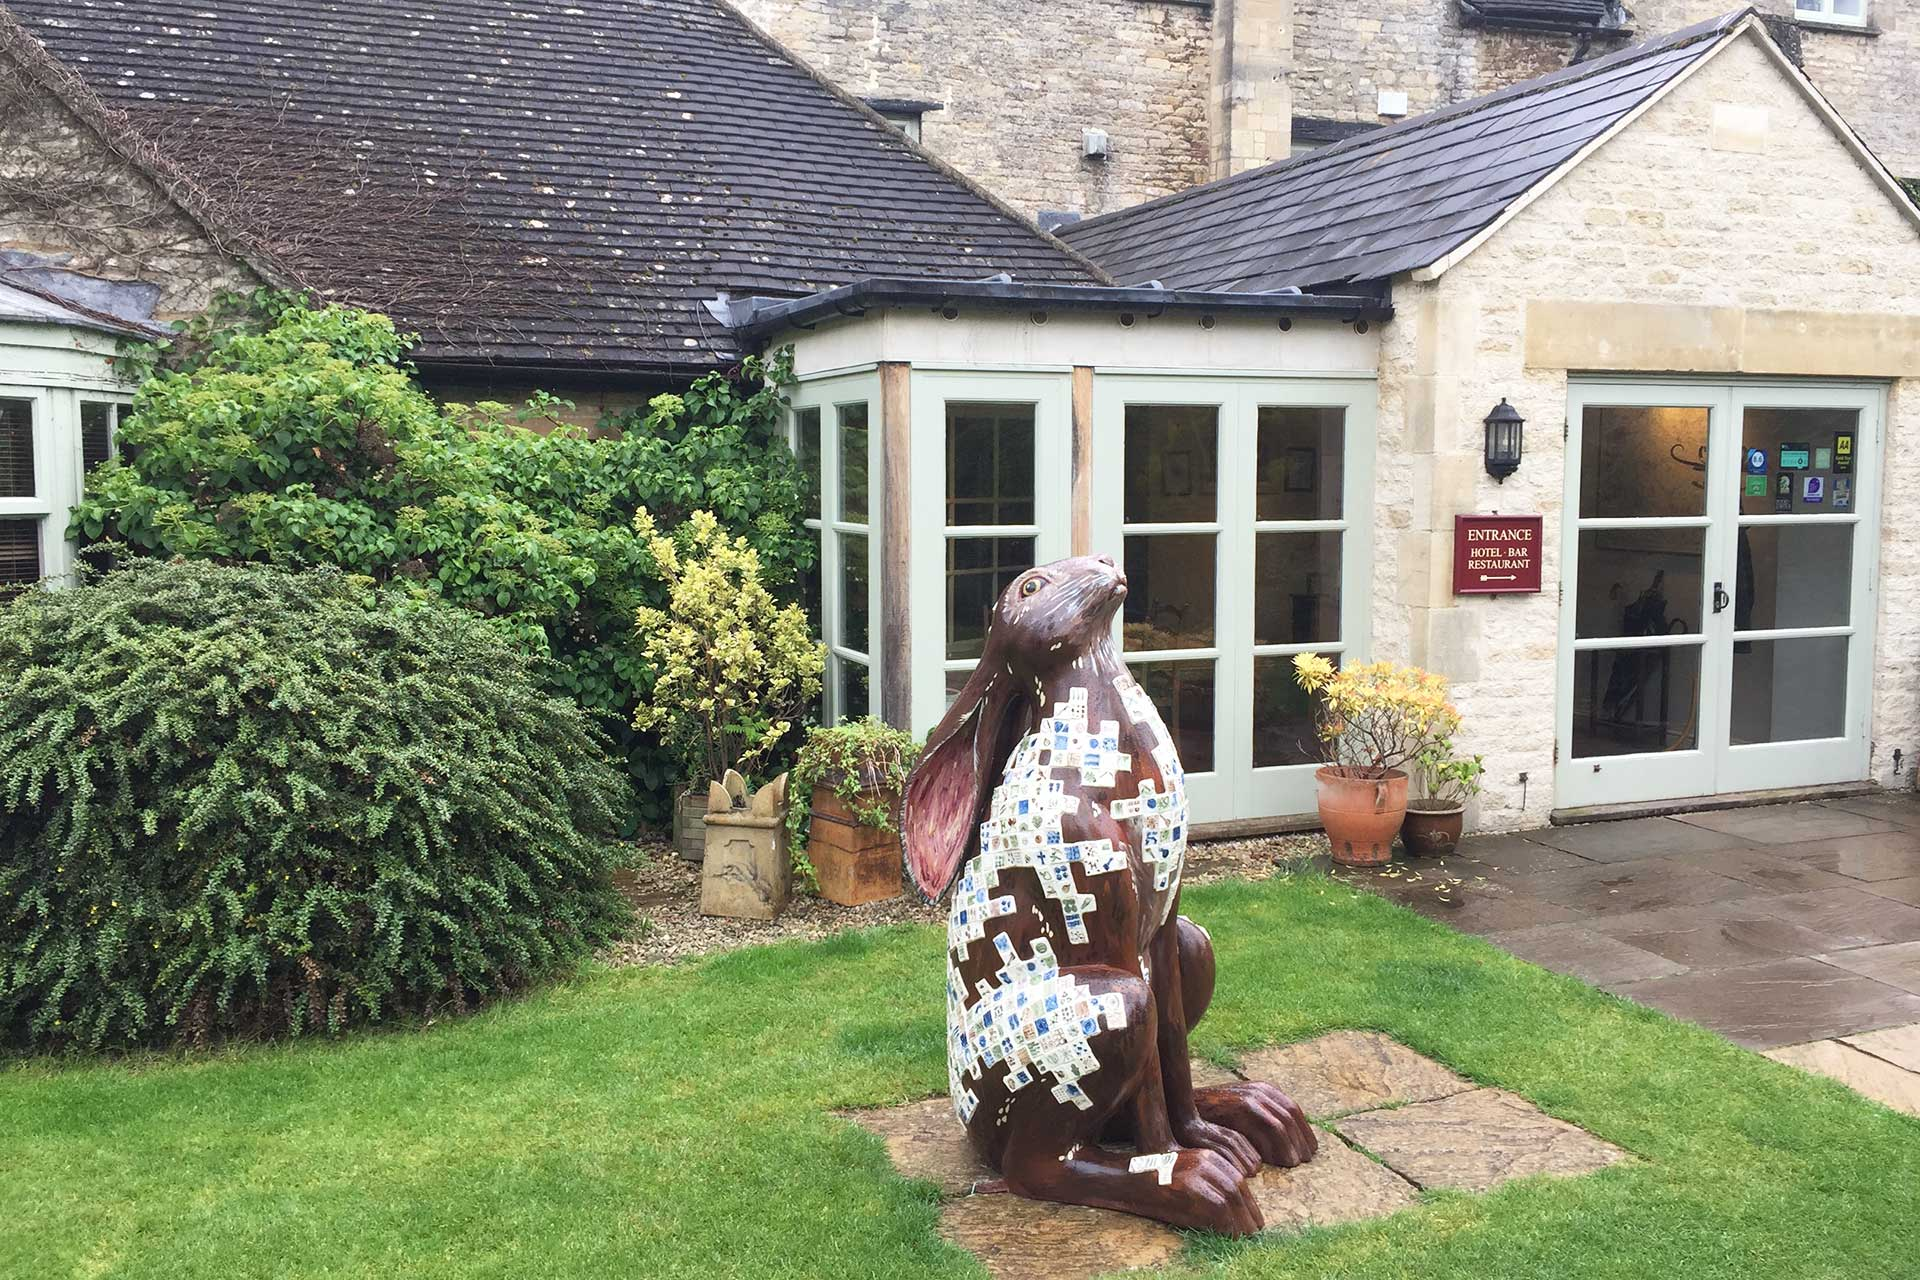 Cotswold Hare Trail - Hare at The Corinium Hotel in Cirencester